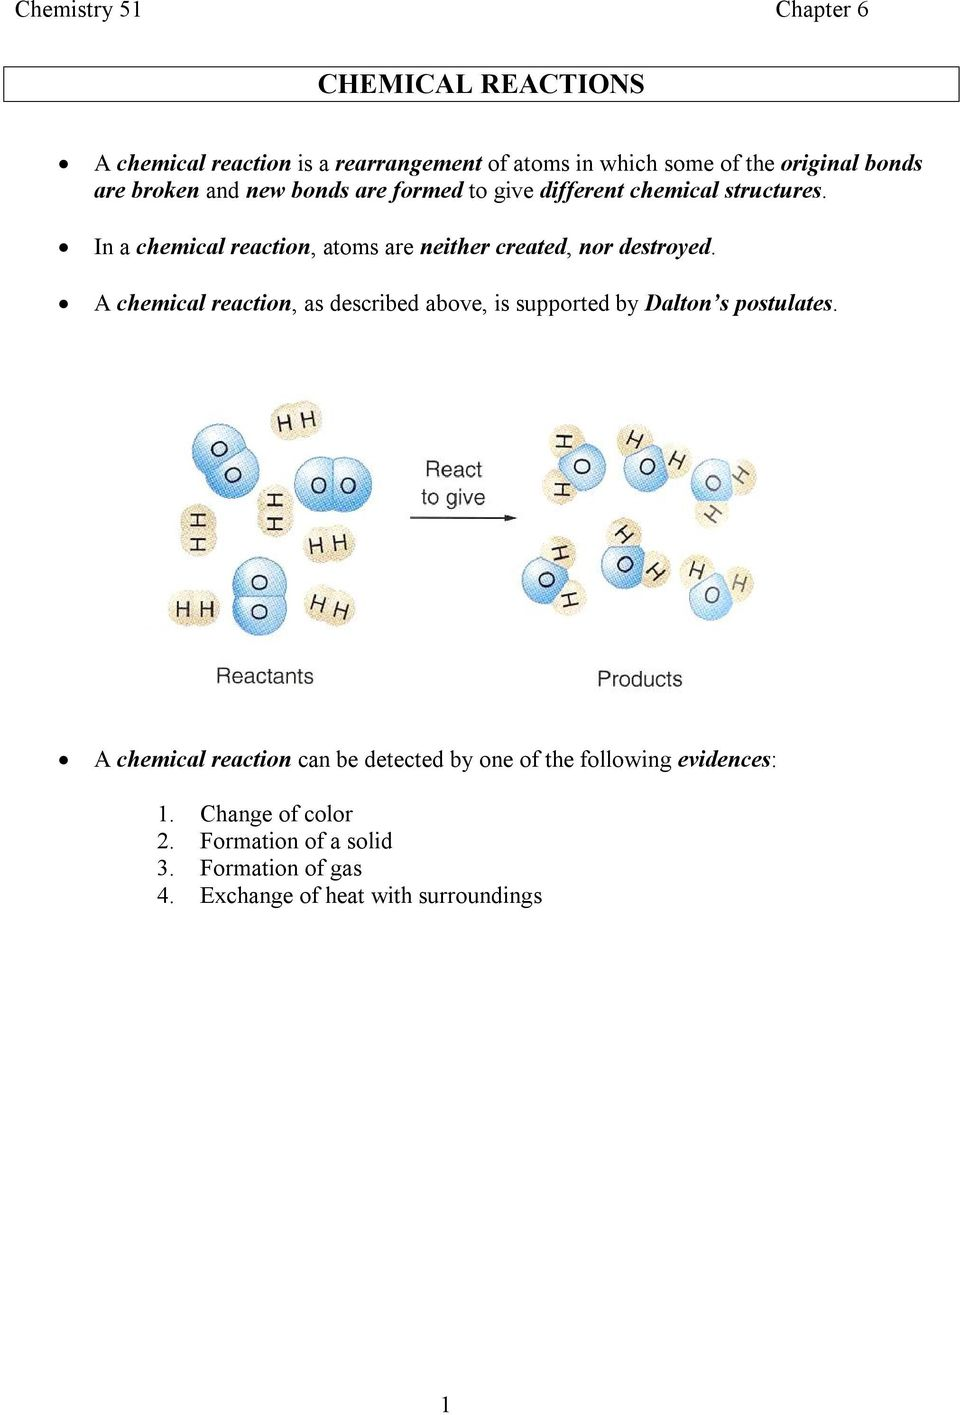 A chemical reaction, as described above, is supported by Dalton s postulates.